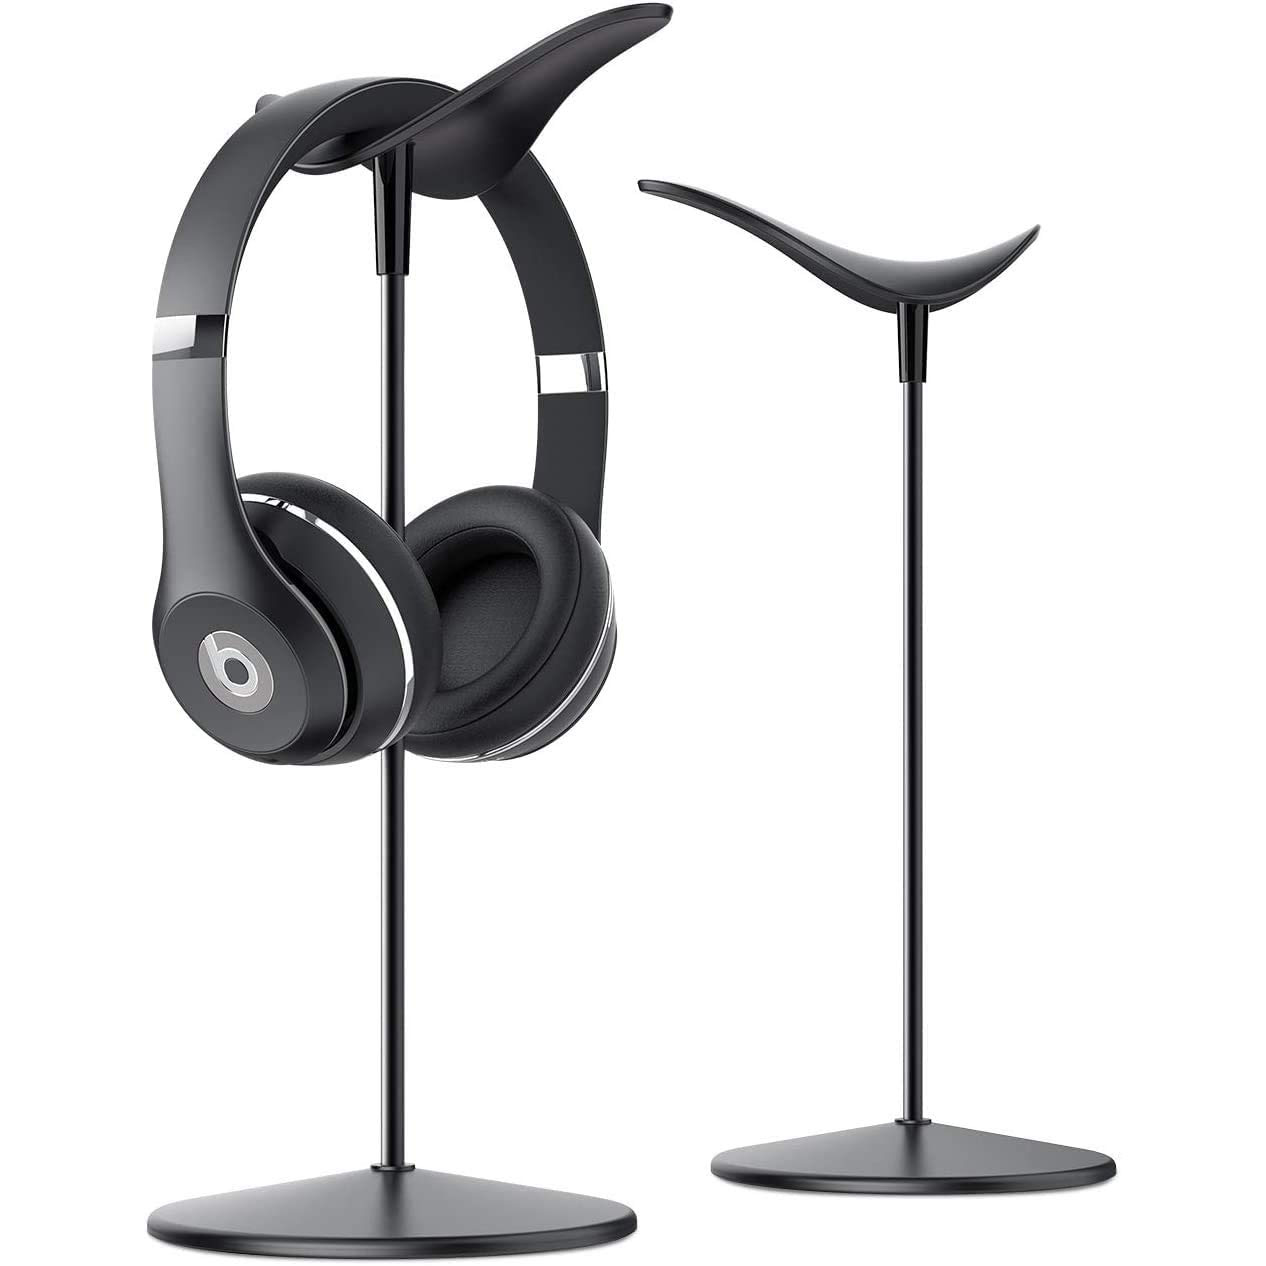 Lamicall Headphone Stand, best headphone stands